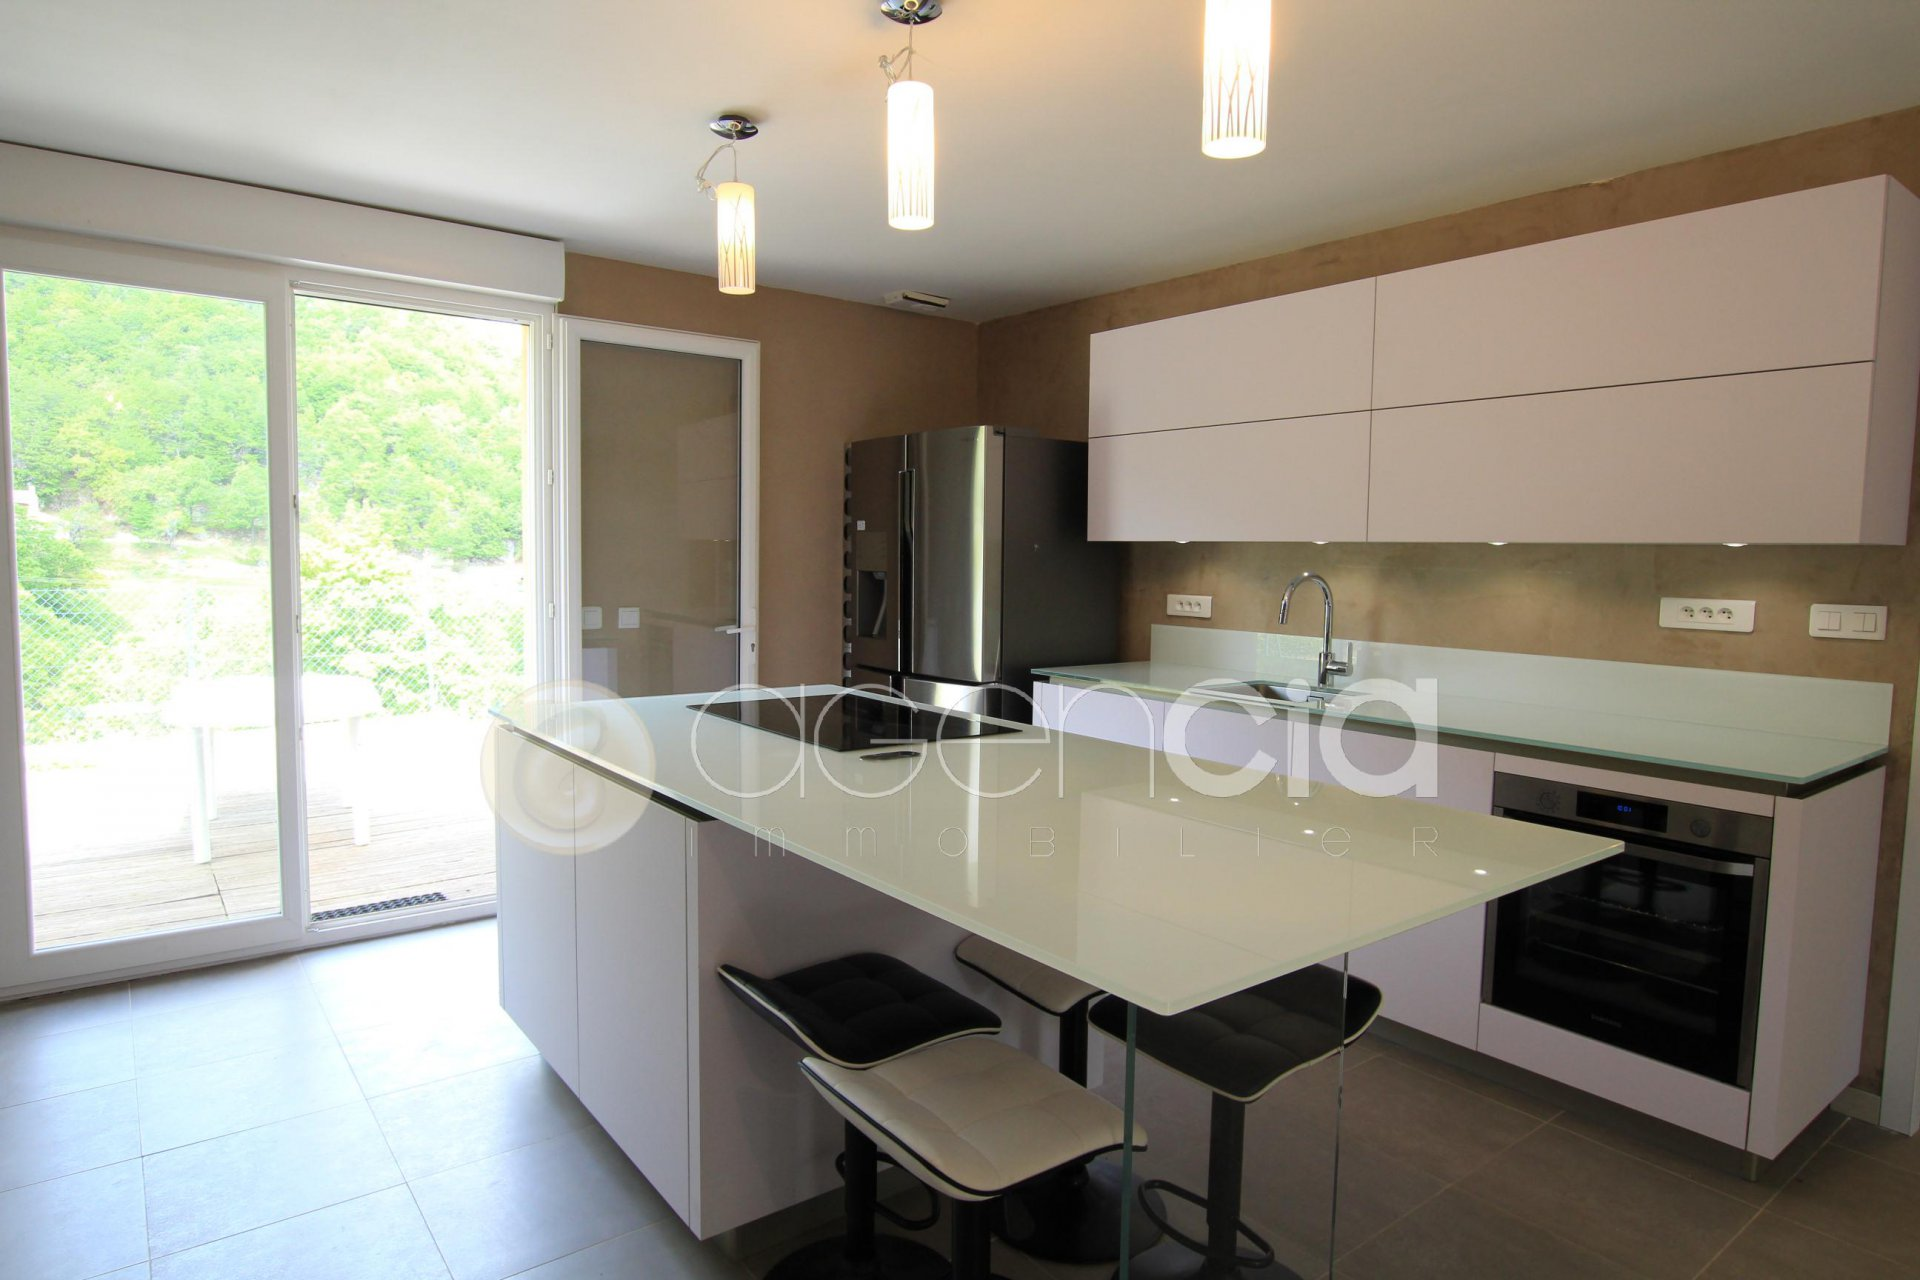 Kitchen bar, stainless steel, kitchen island